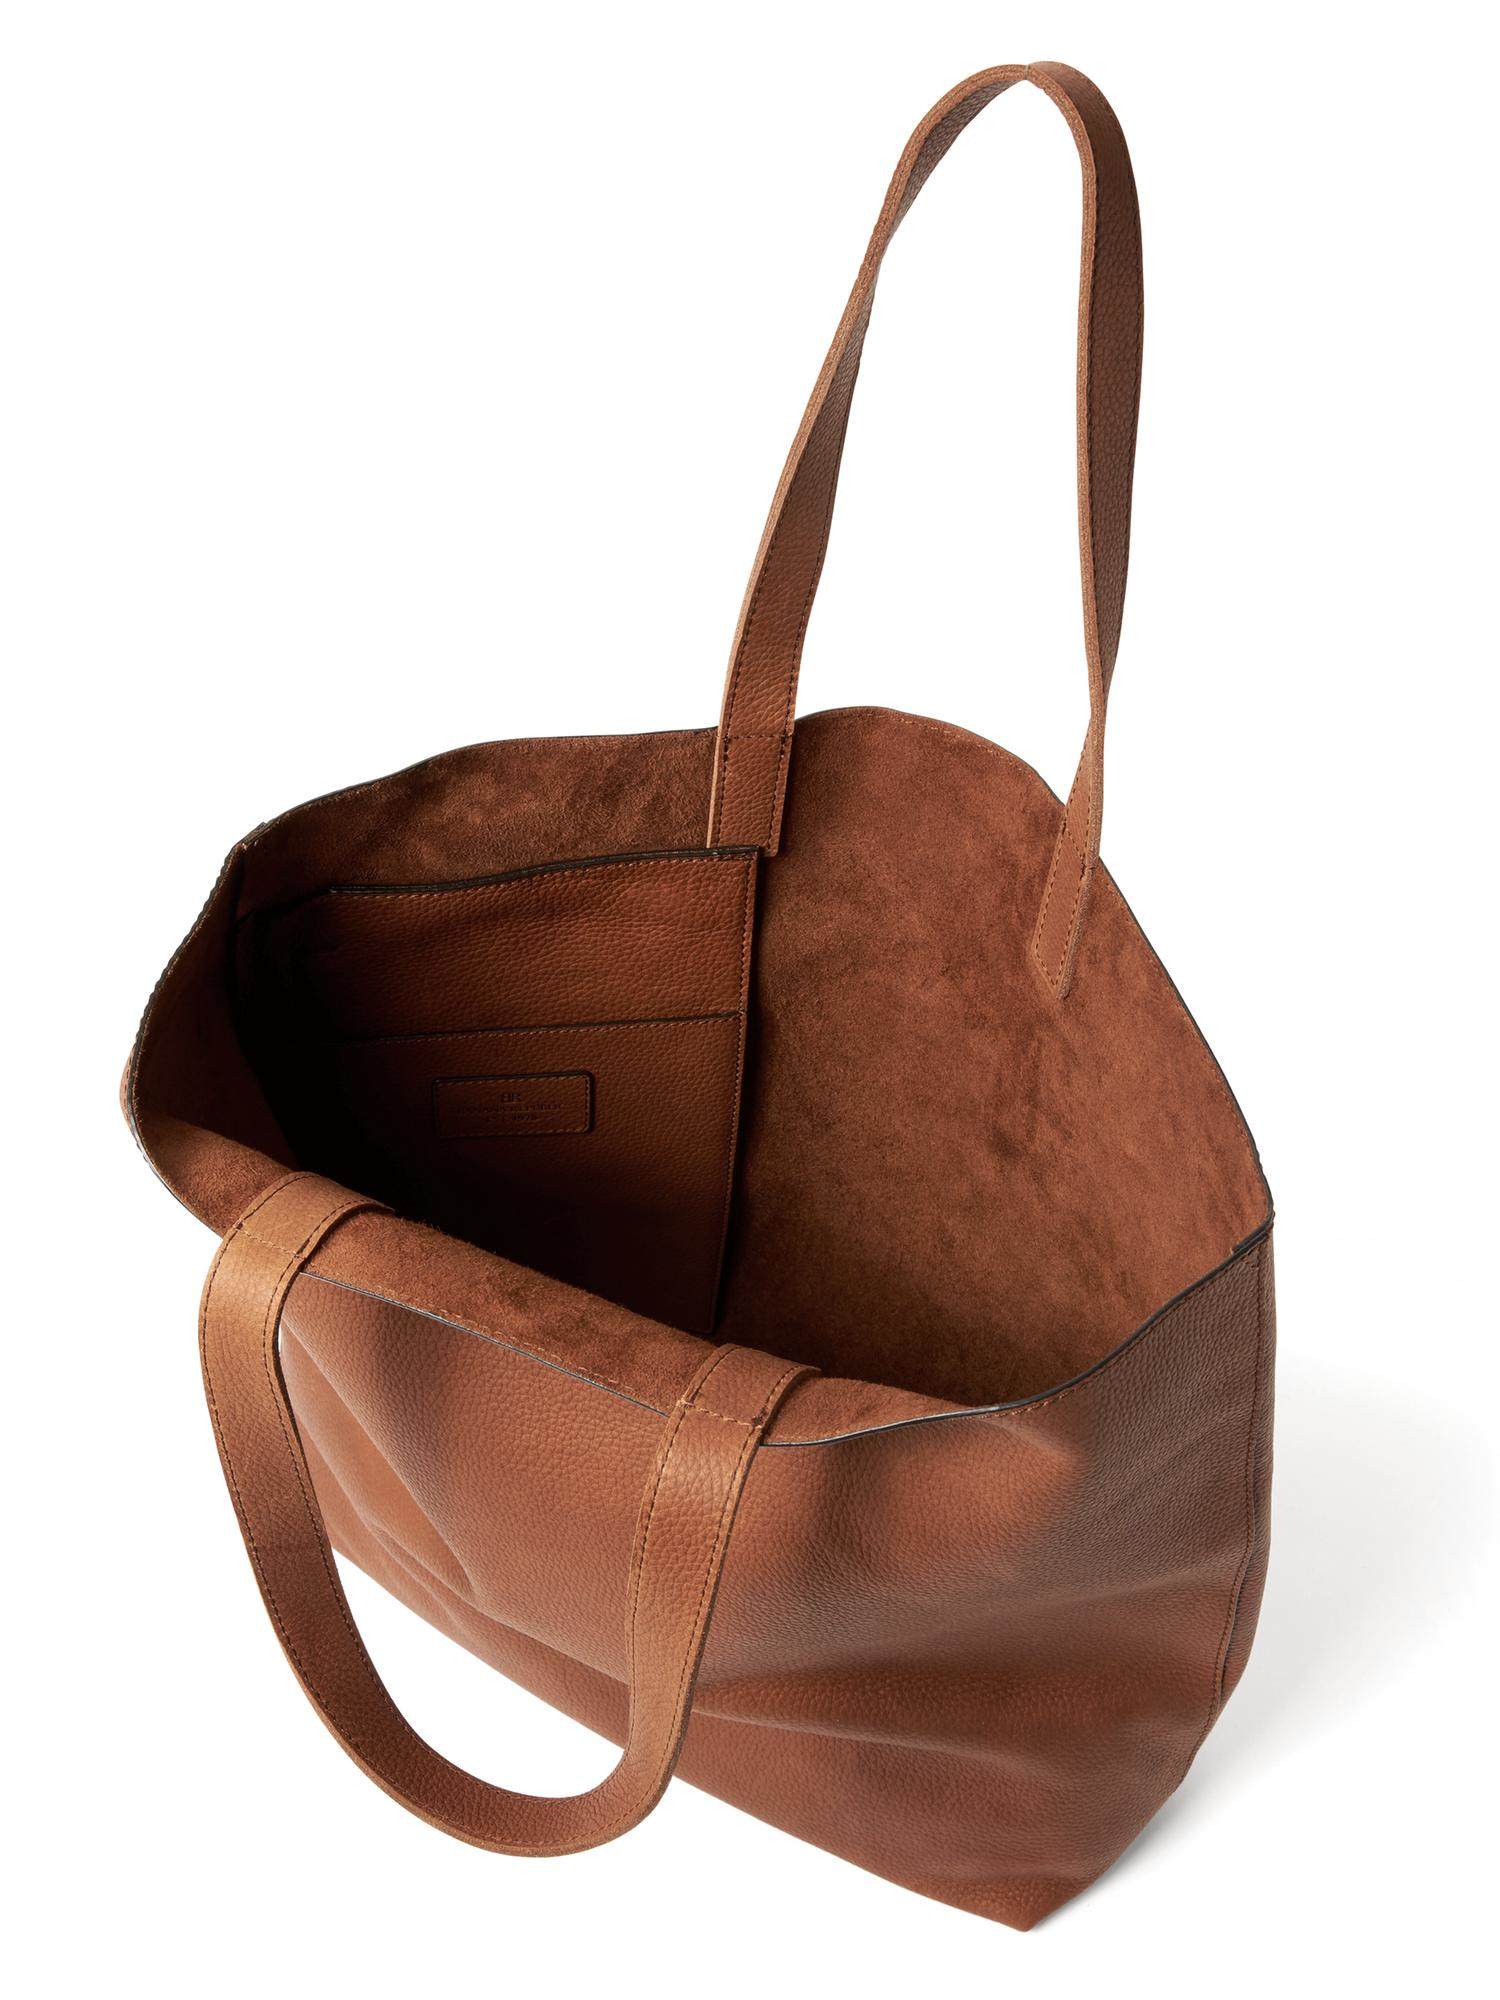 6aa93b8e8395 Lyst - Banana Republic Side-Zip Leather Tote in Brown